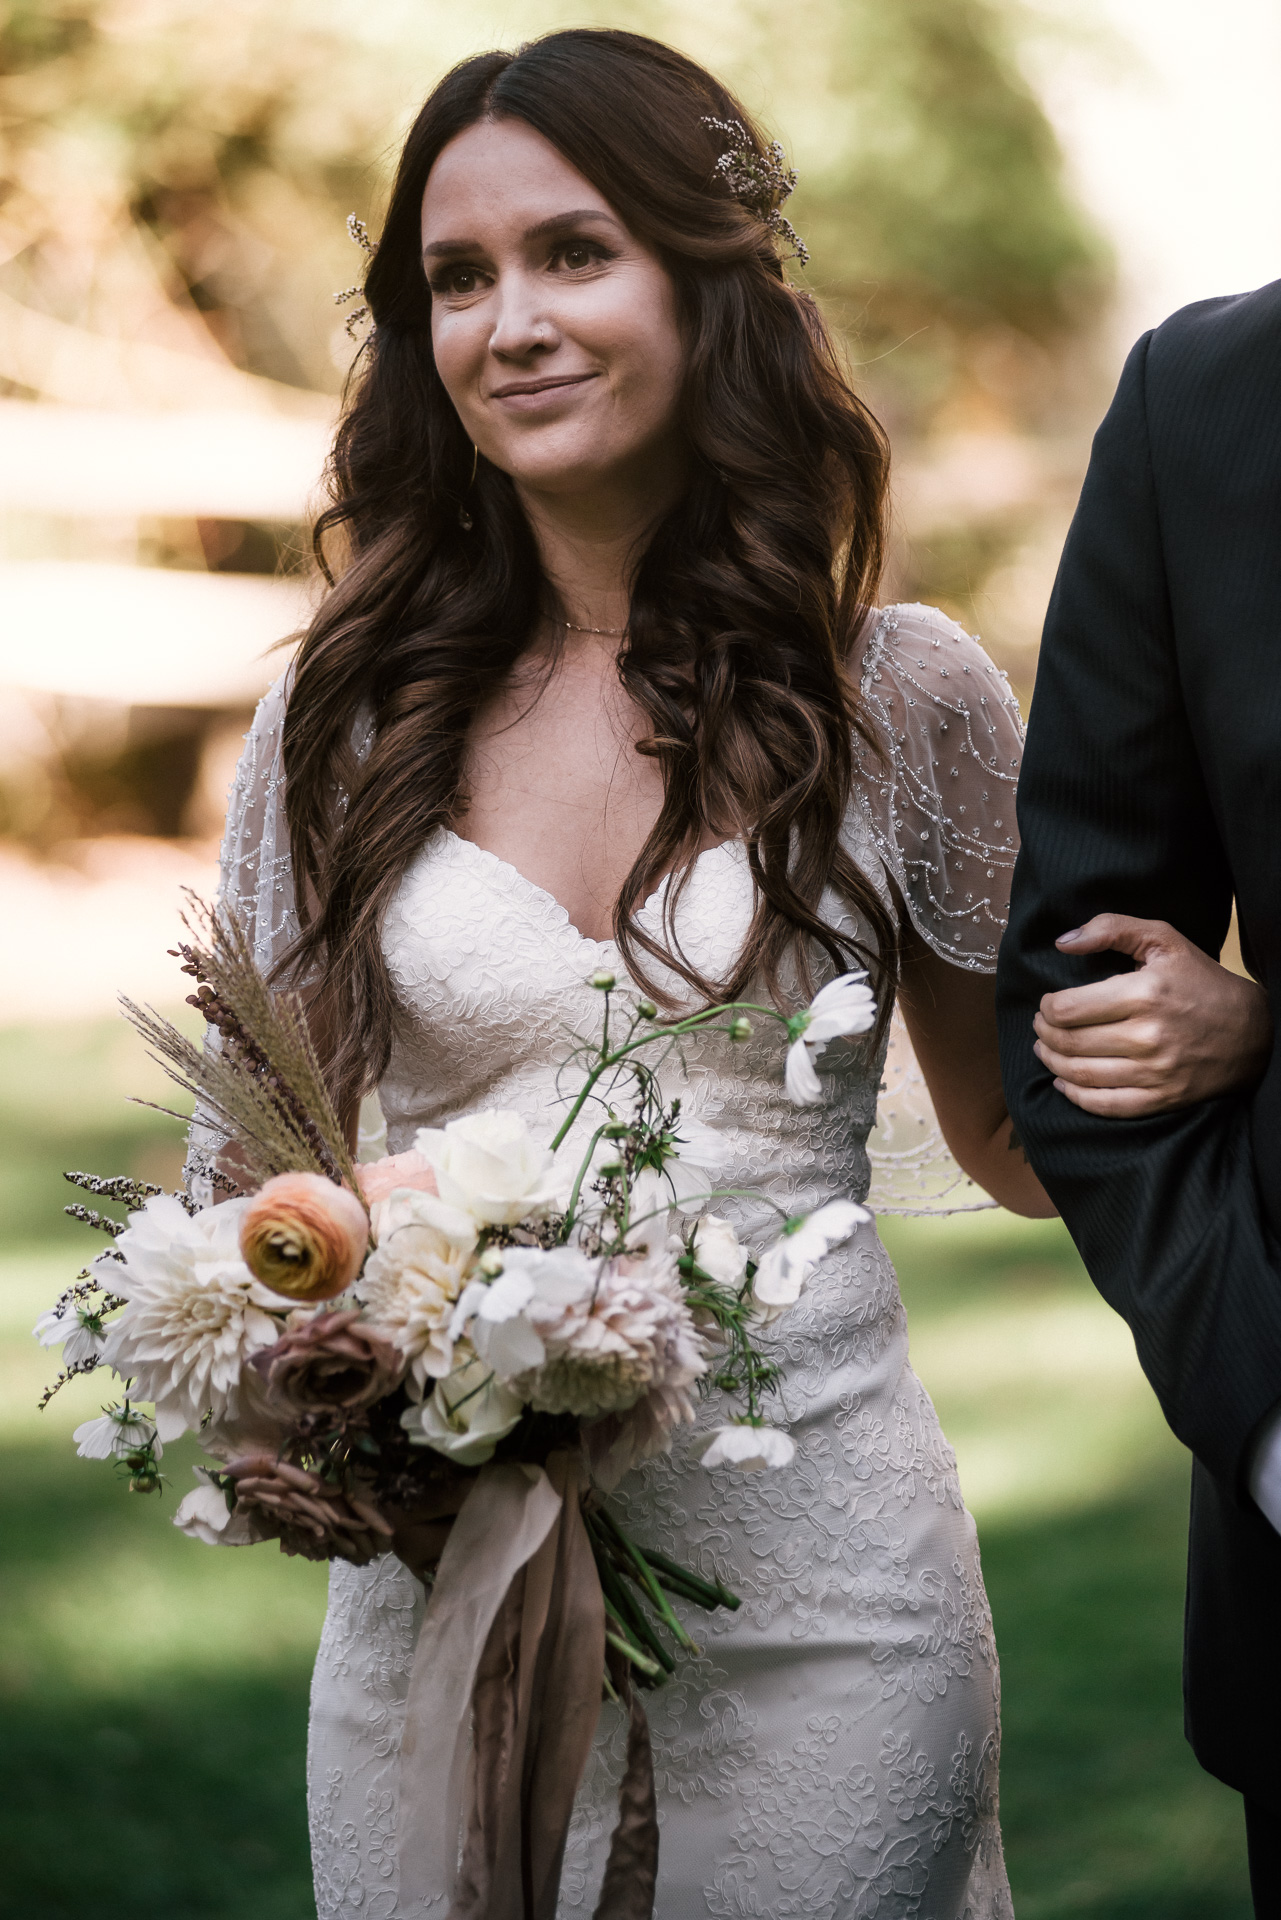 bride wearing lovely wedding dress with lace details and gorgeous vintage bouquet sees her groom for the first time shot by wedding photographer at the charming St. George Hotel in Volcano California